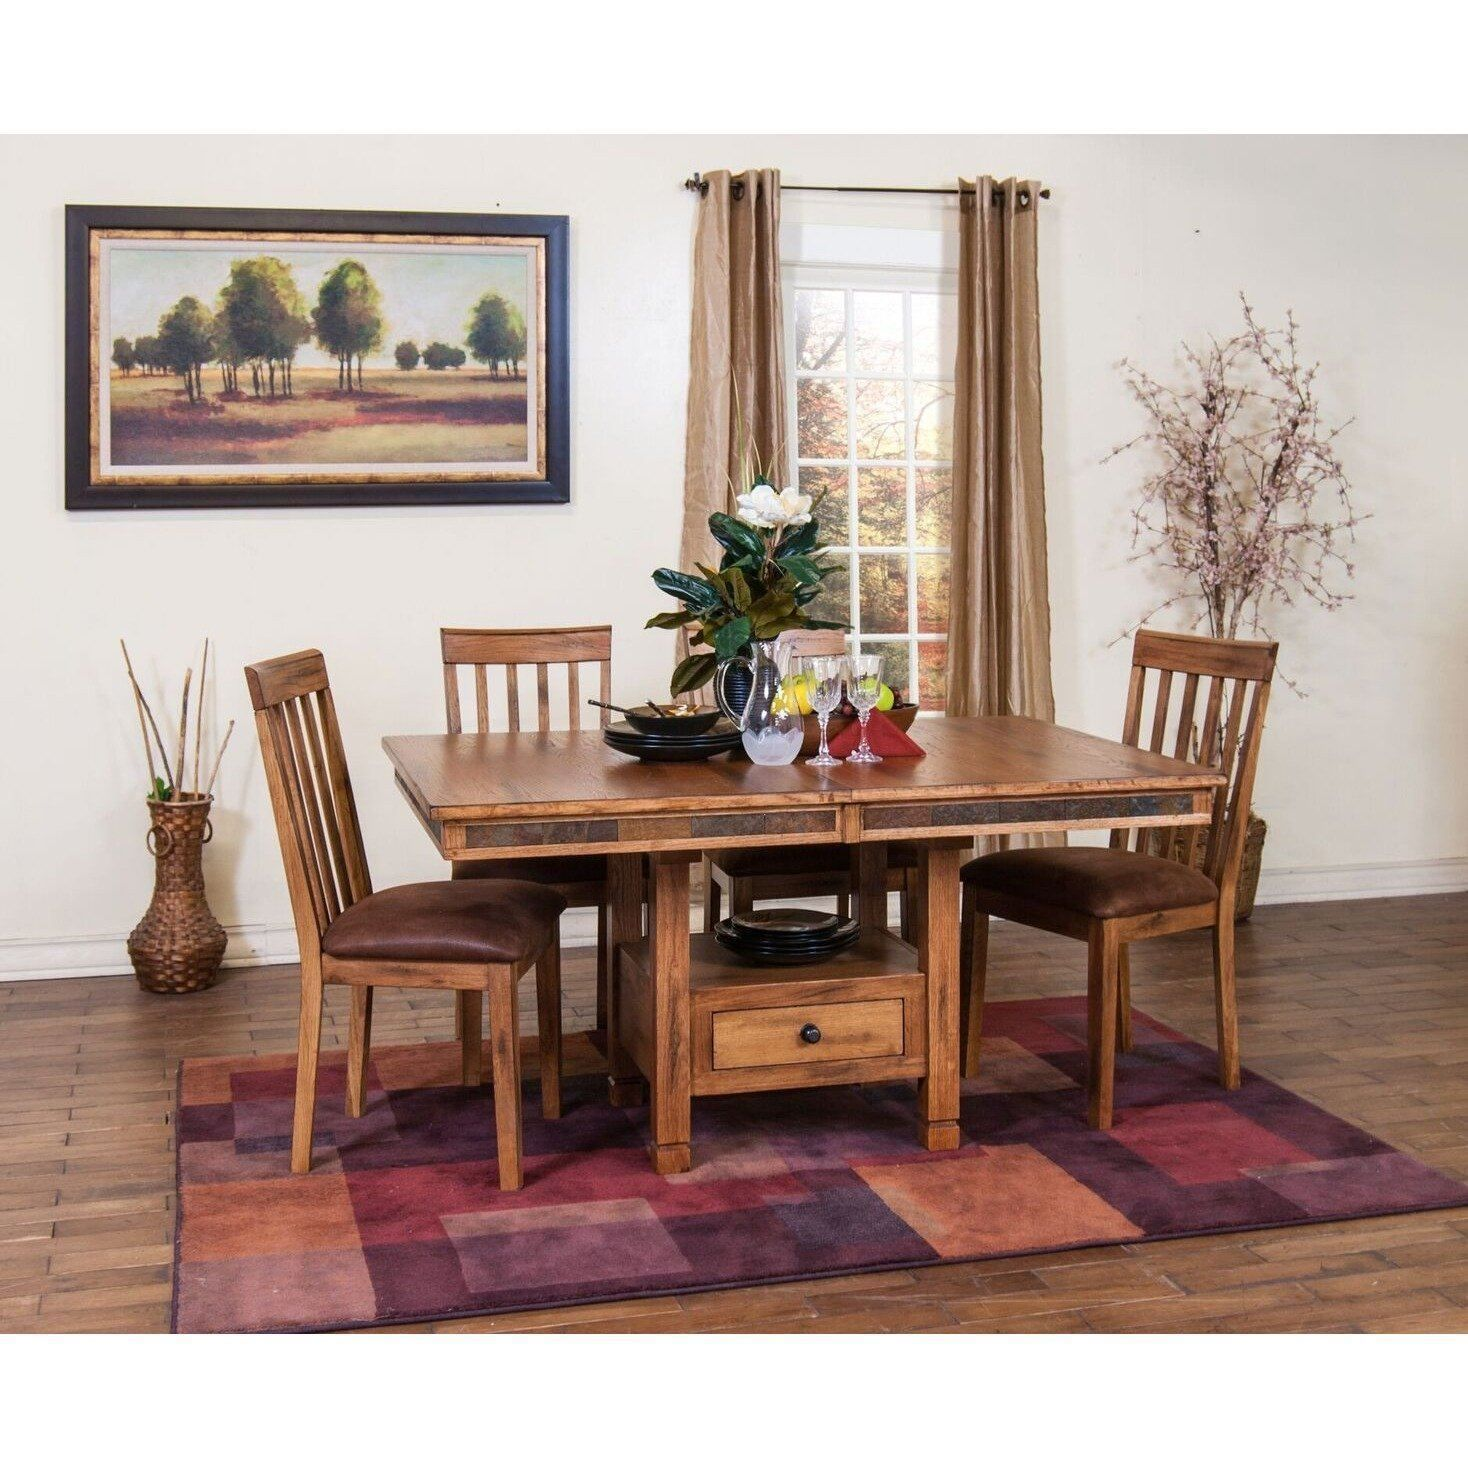 Sunny Designs Sedona Butterfly Dining Table | Pedestal ...